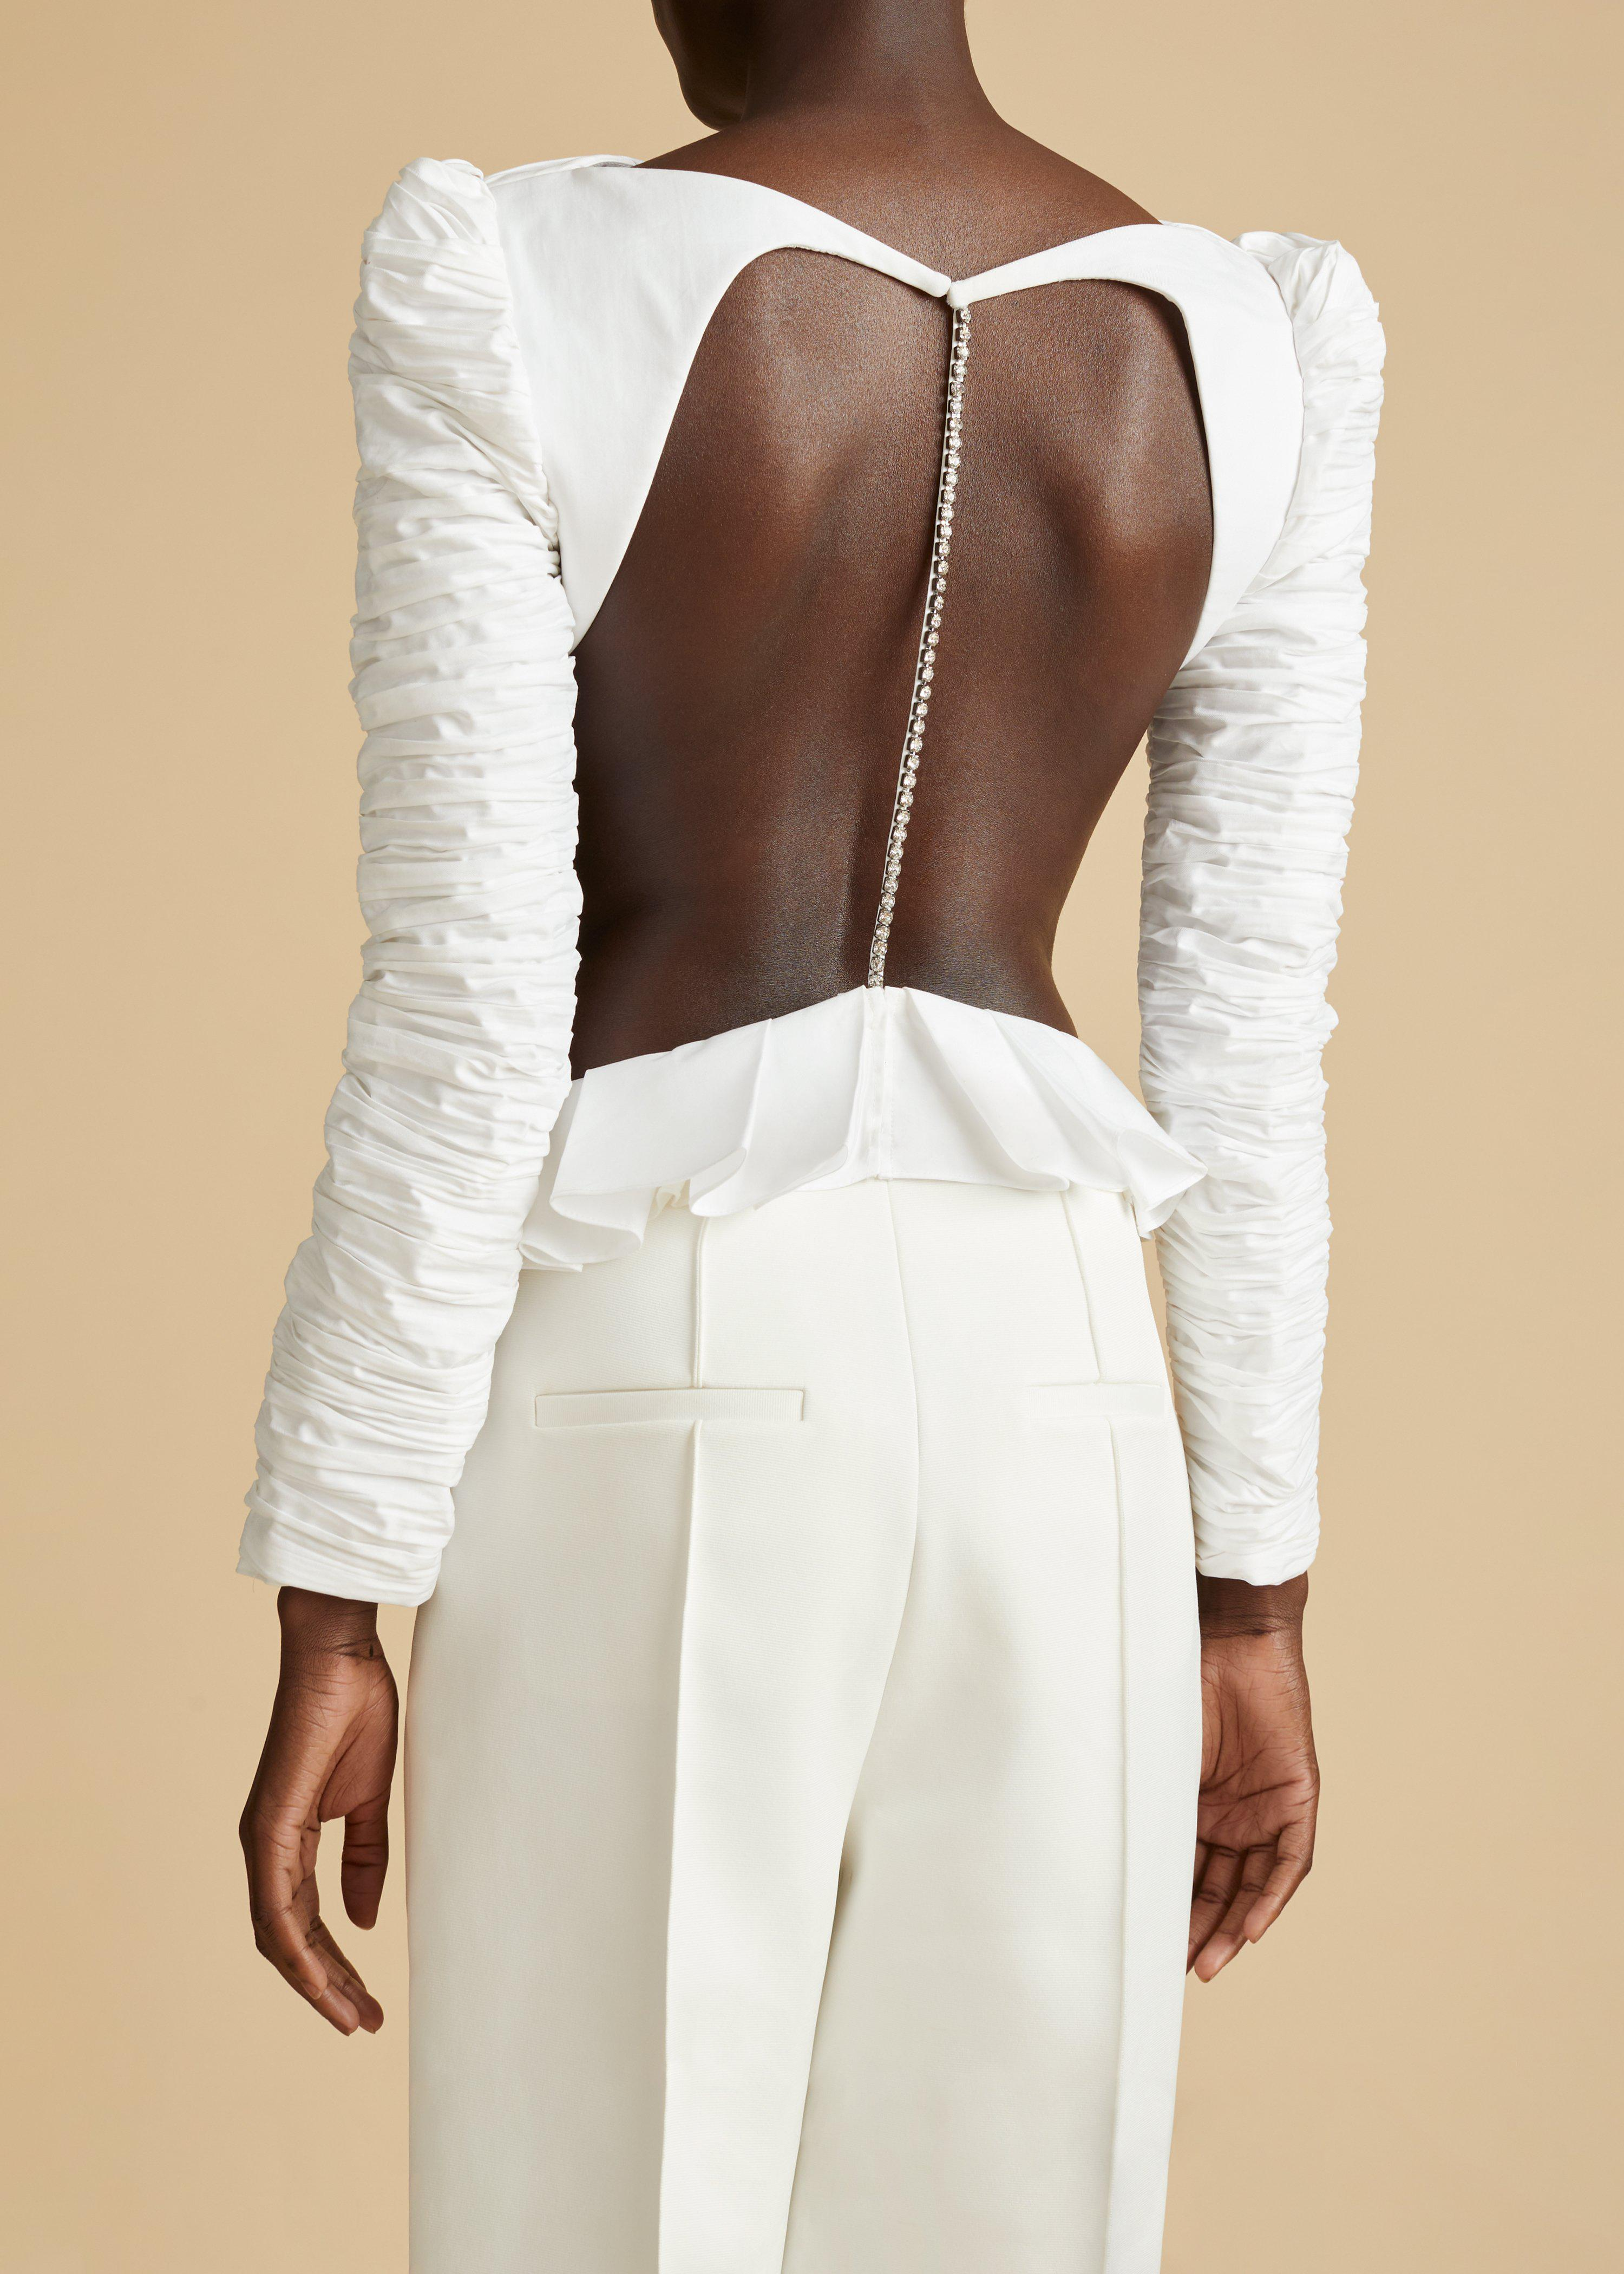 The Rosy Top in White 2